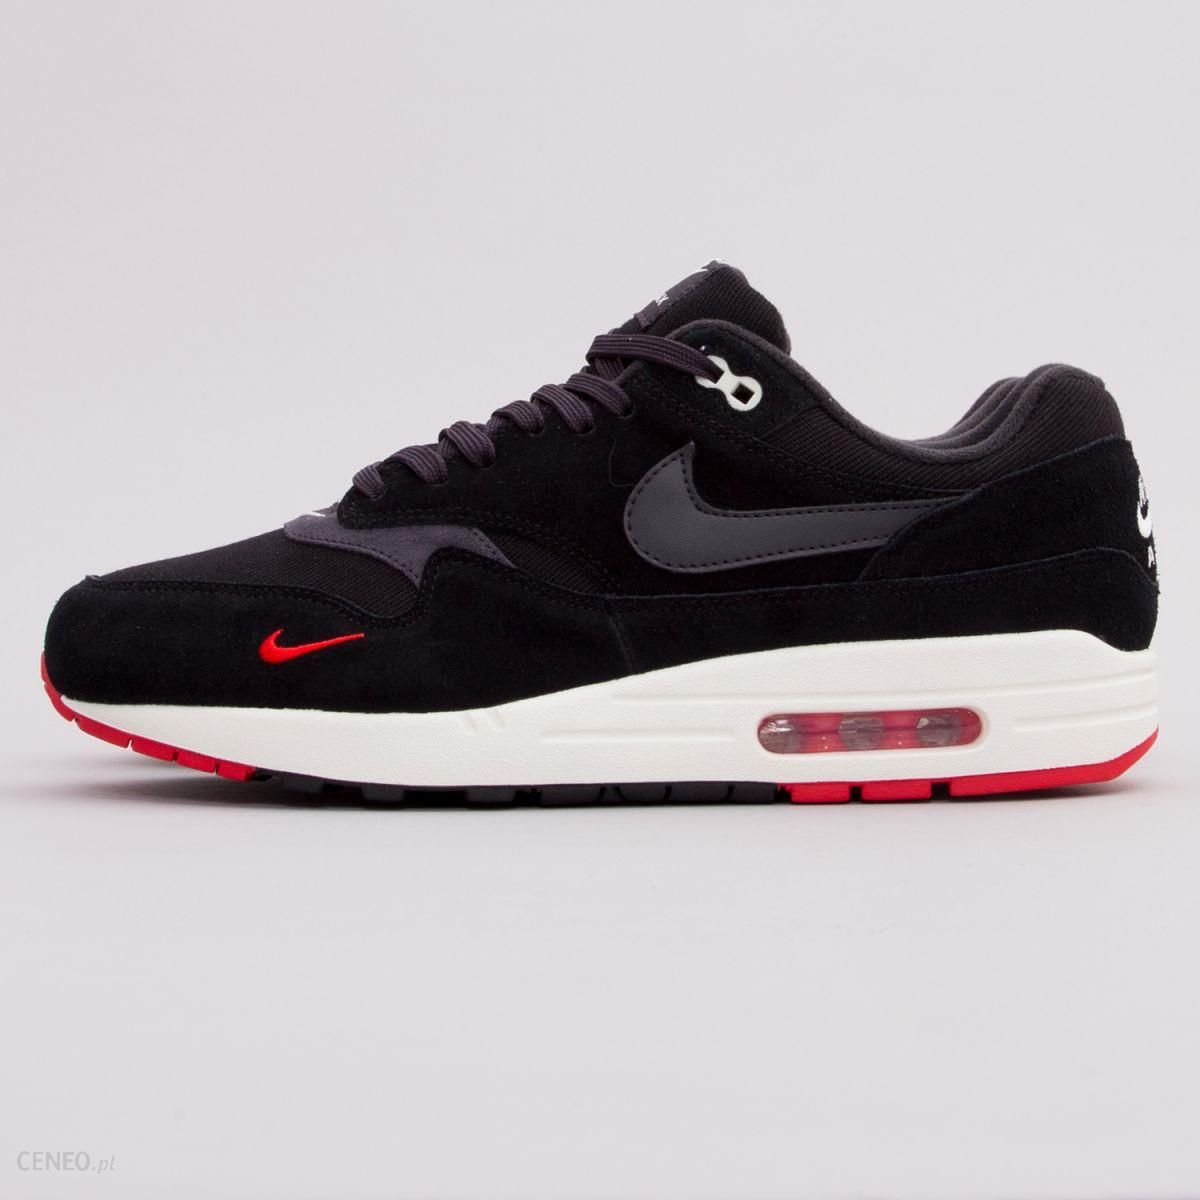 nike air max 1 premium mini swoosh 875844 007